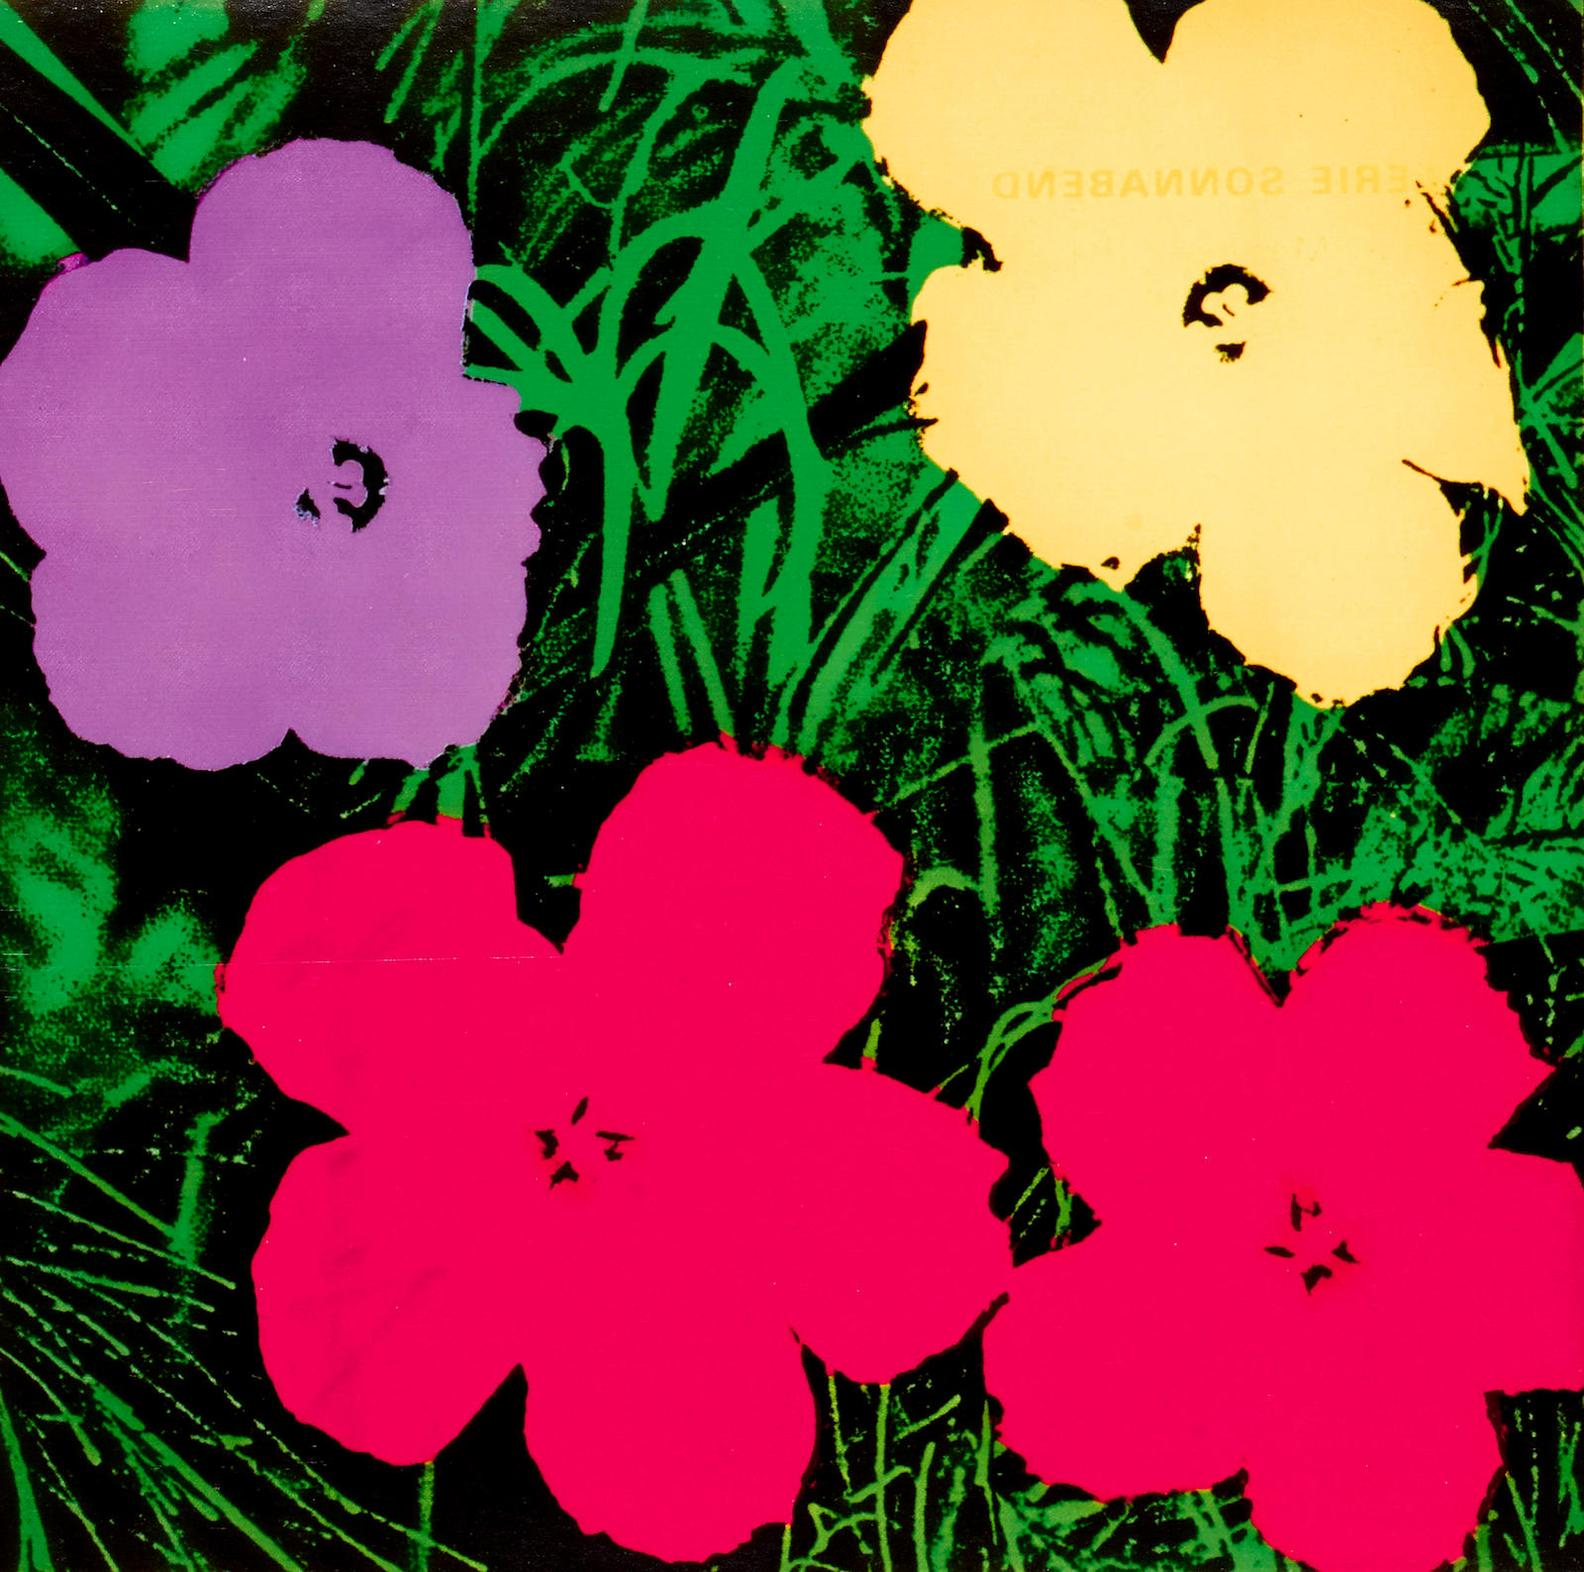 Andy Warhol-Flowers (Sonnabend Invitation)-1970